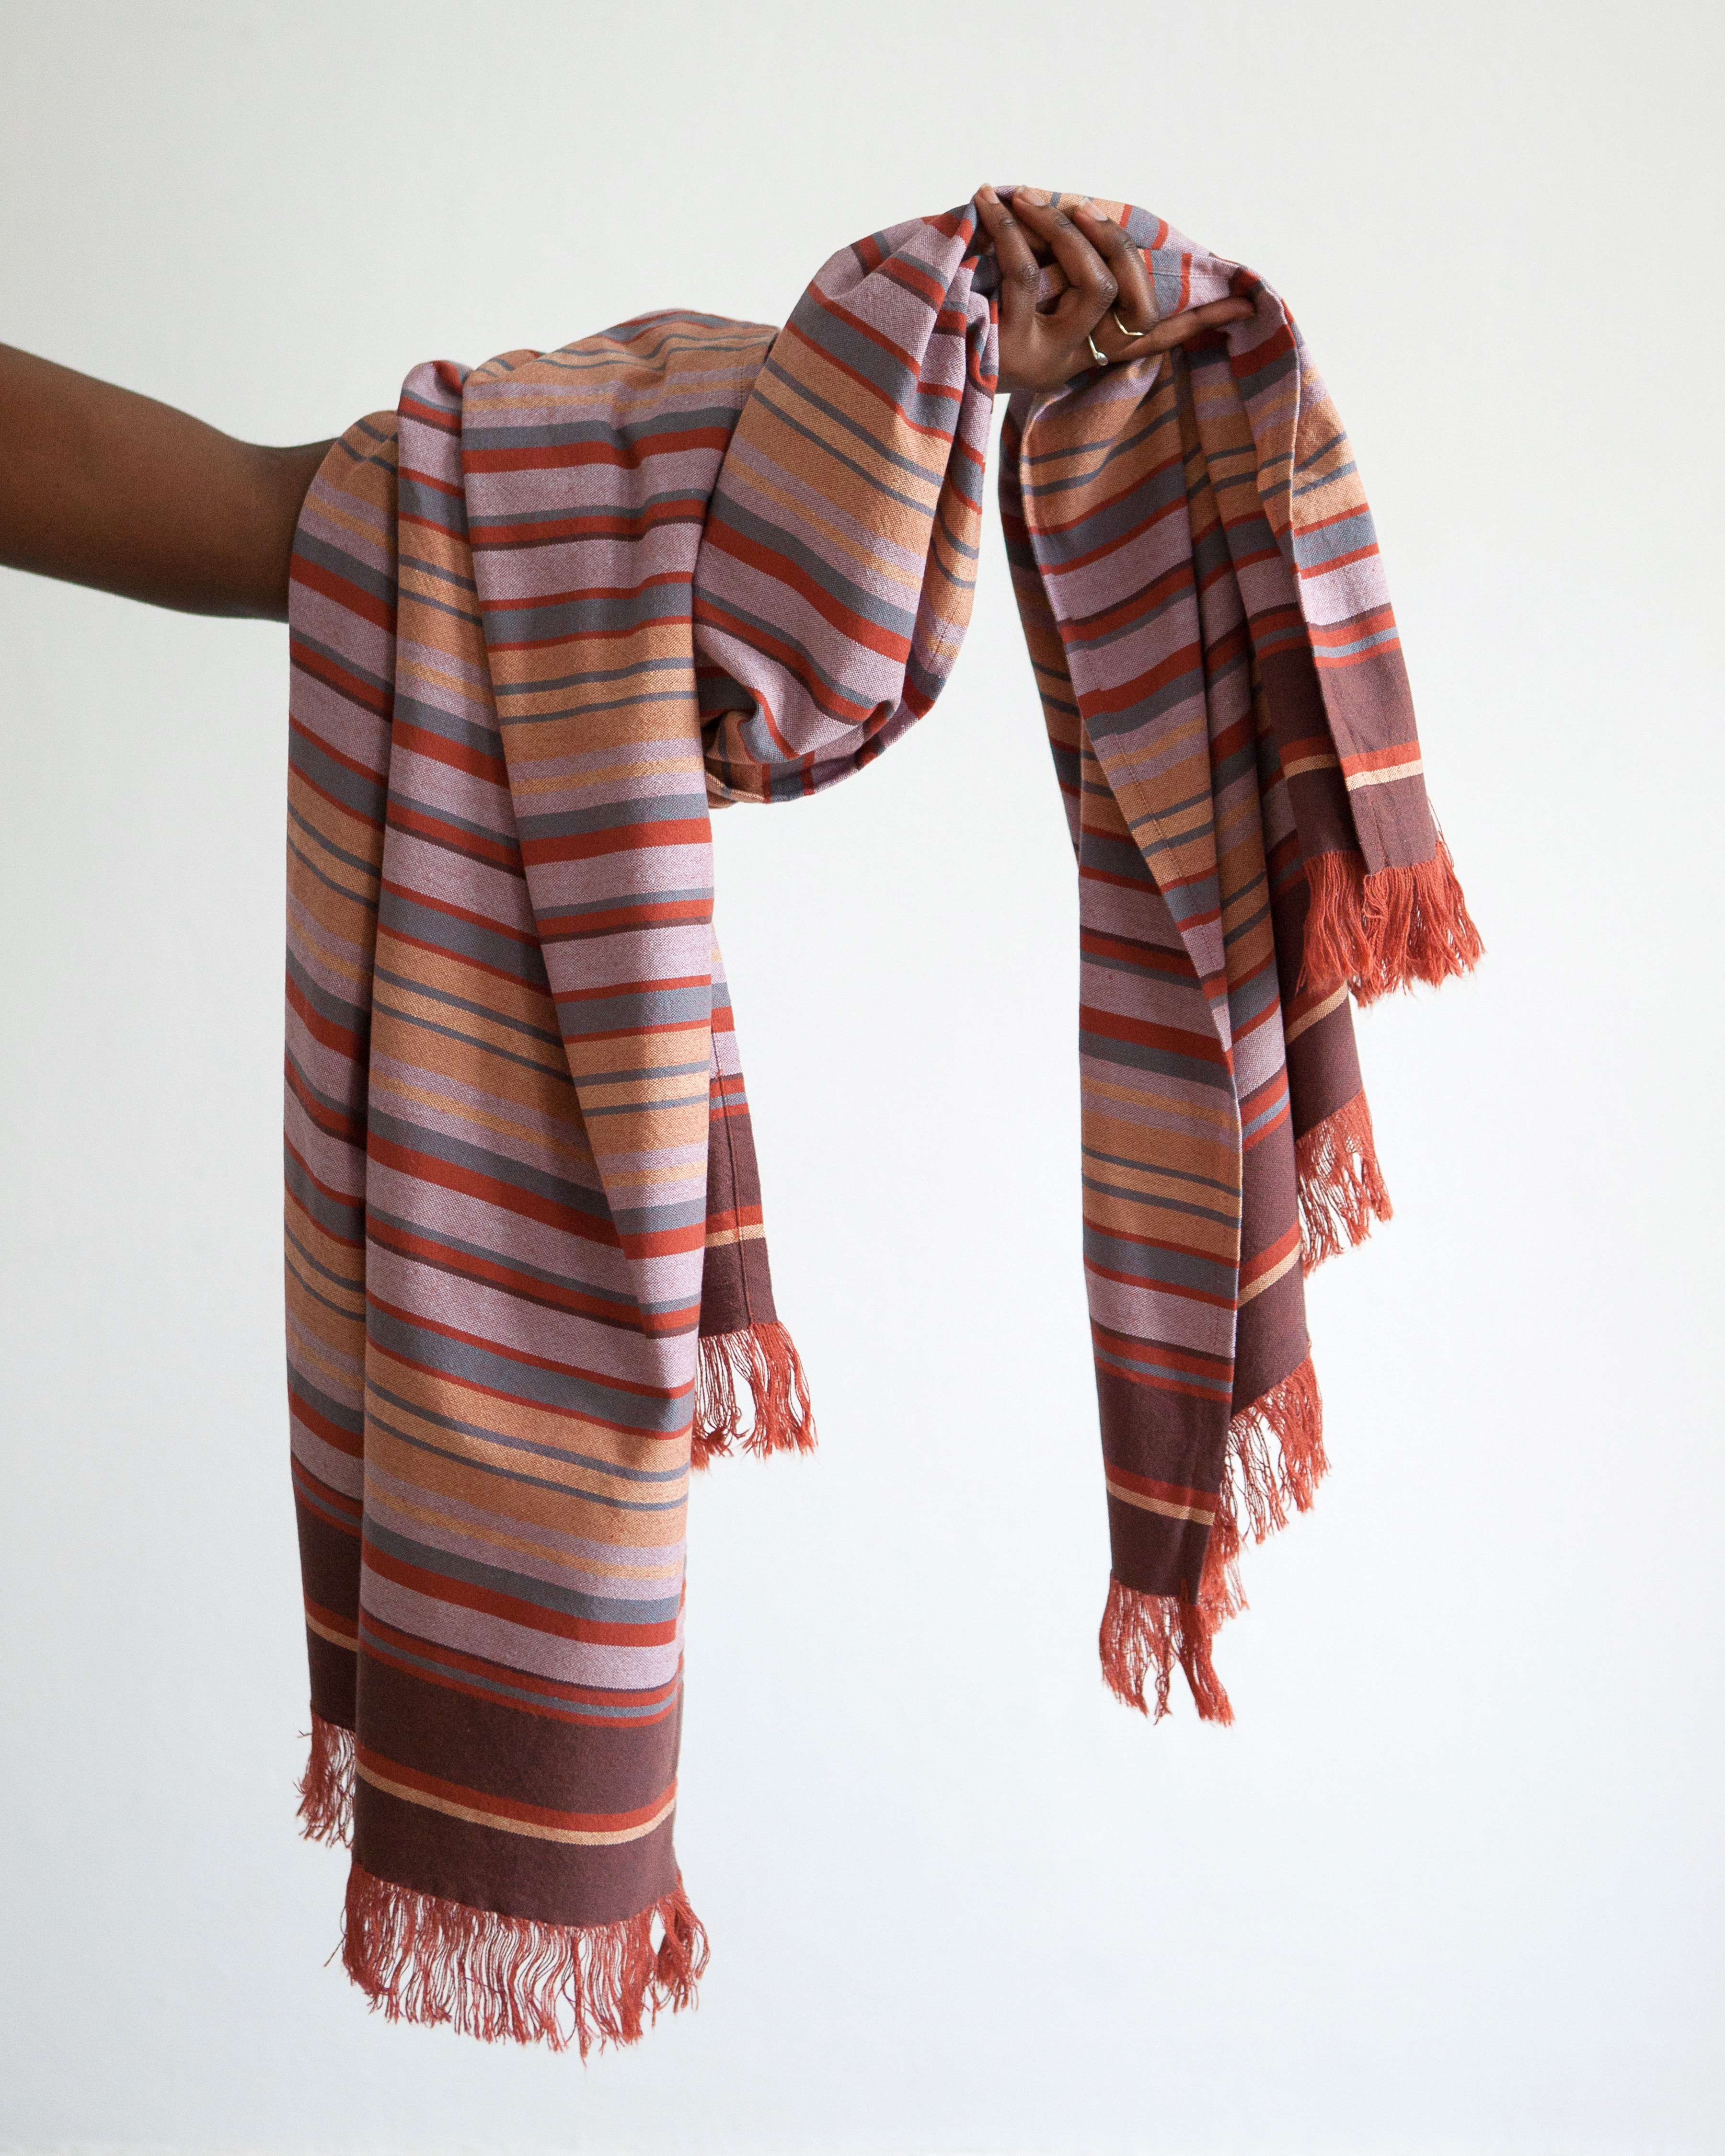 The Mungo 100% Cotton Kikoy South is a colourful and versatile beach wrap, sarong, head wrap or towel for tropical beach holidays - in Serandite